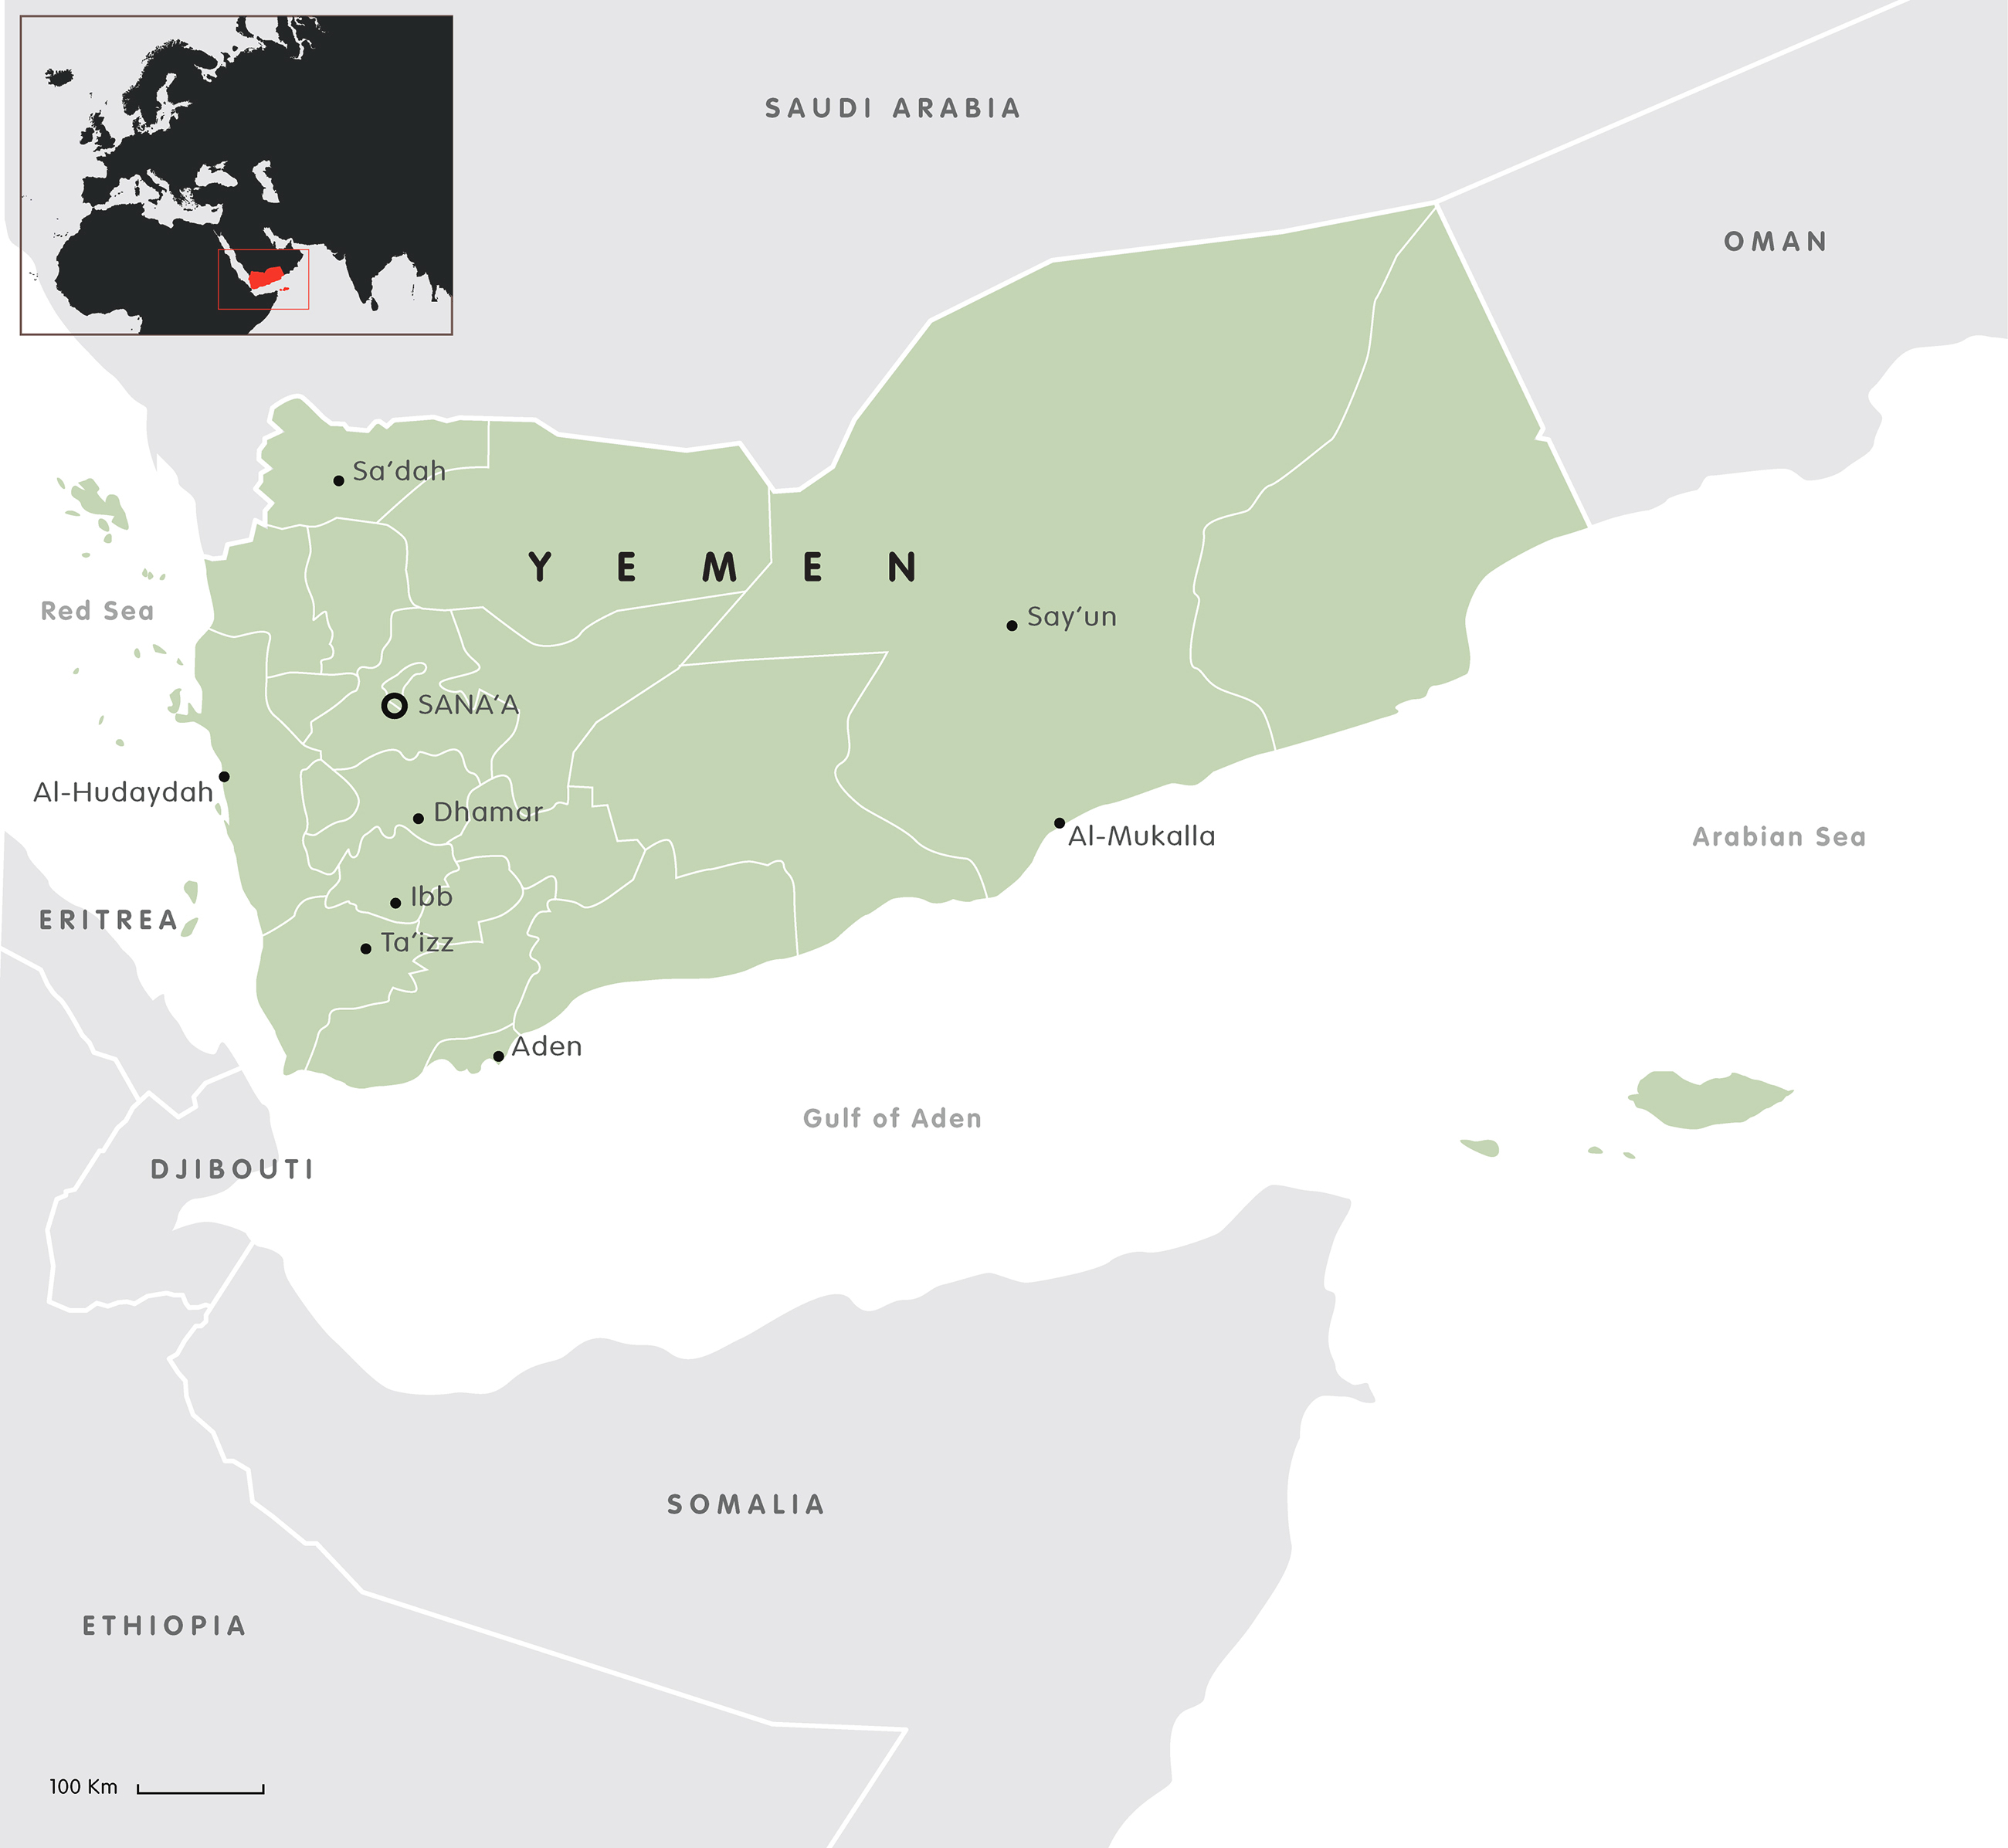 Mappa dello Yemen. Credits to: European Council on Foreign Relations.